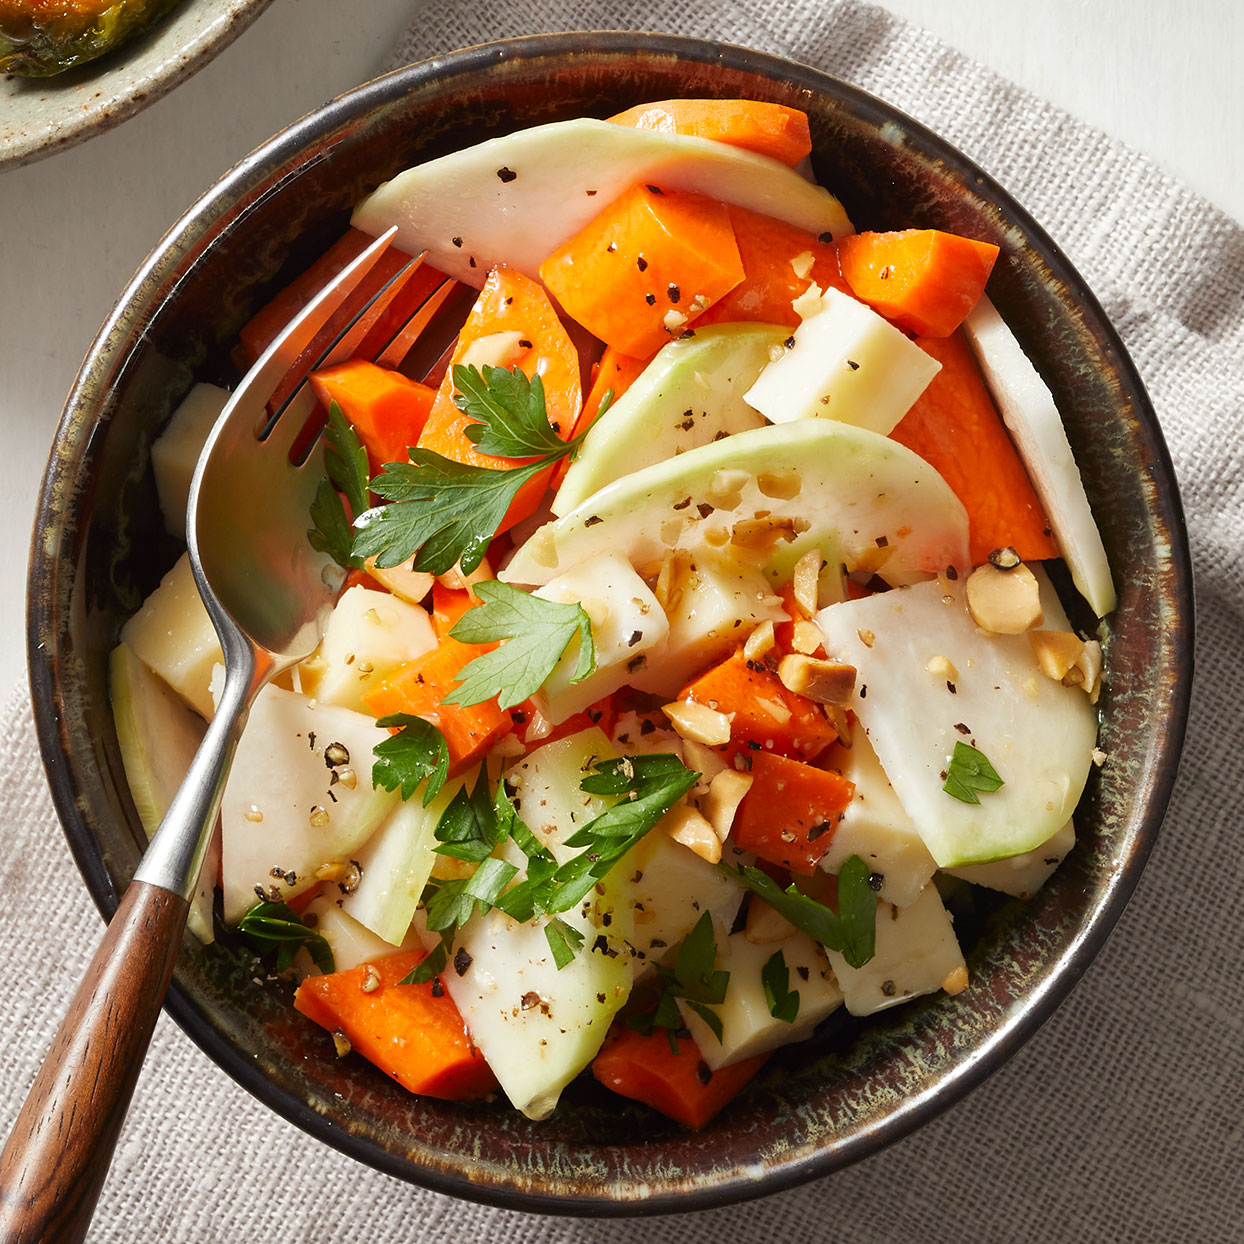 Kohlrabi & Carrot Salad with Cheddar